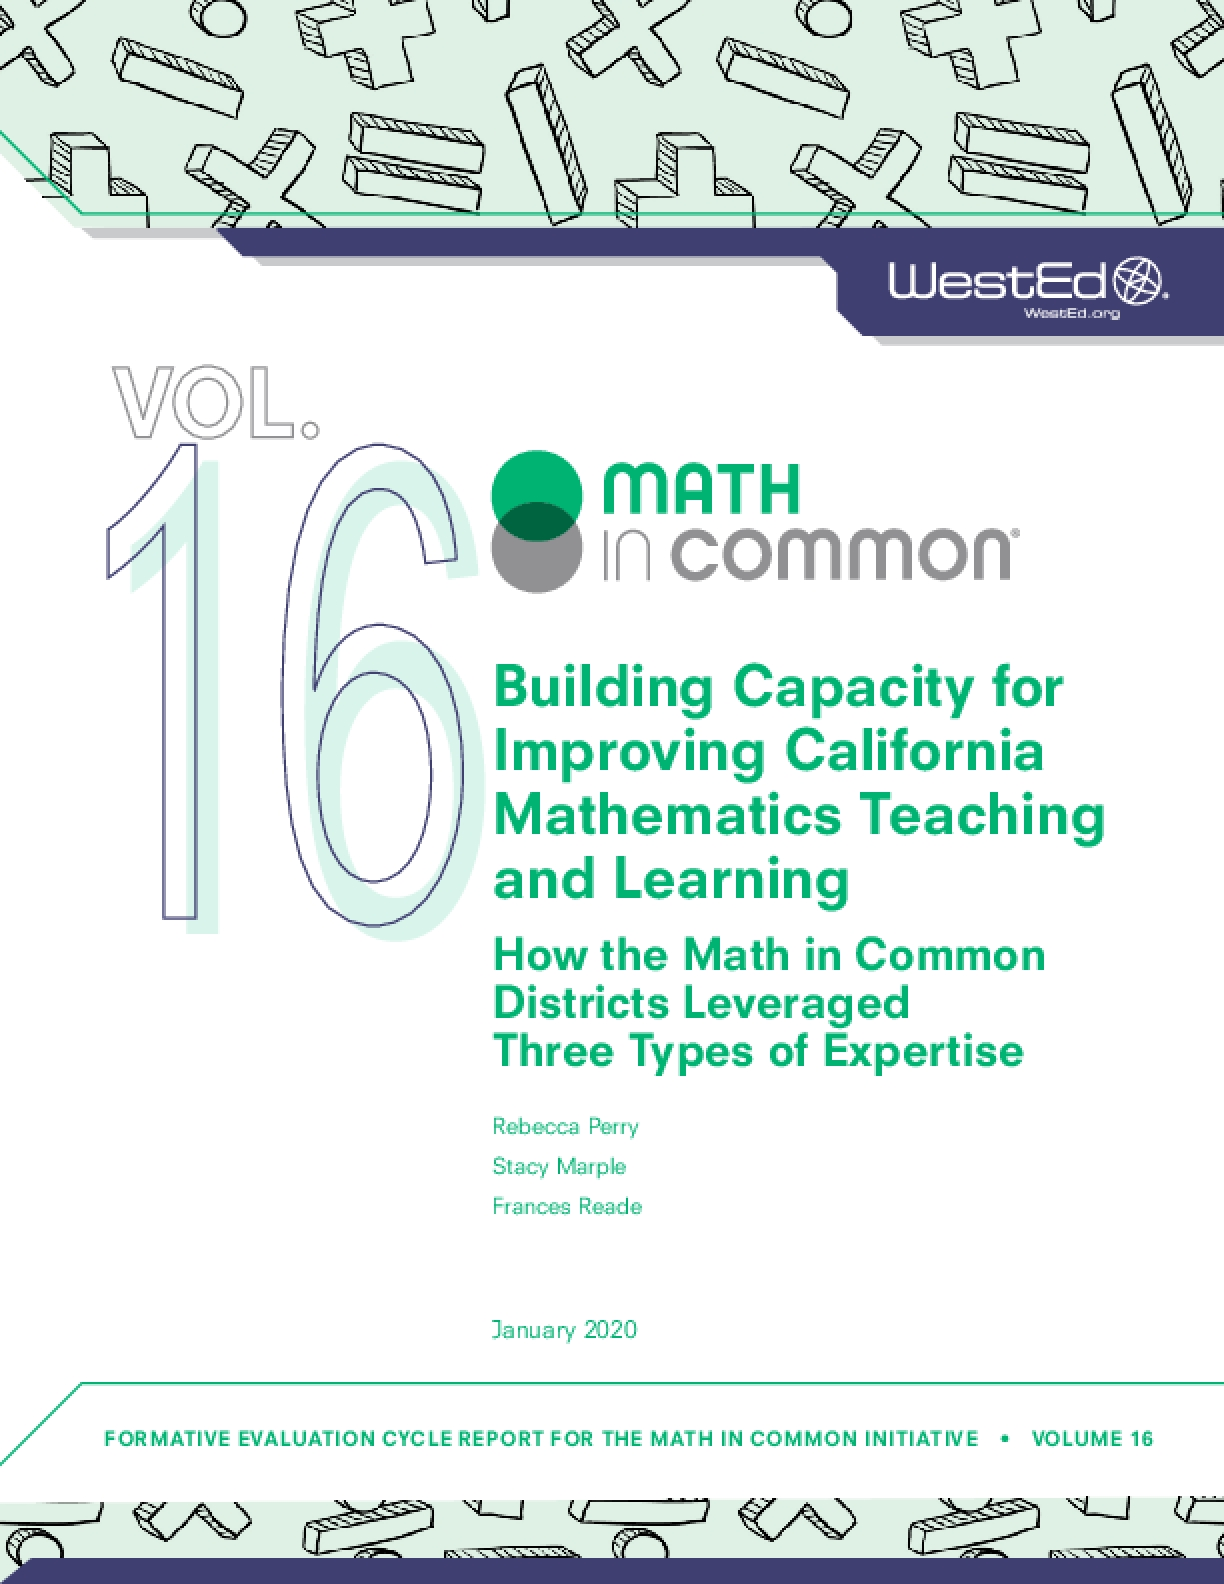 Building Capacity for Improving California Mathematics Teaching and Learning: How the Math in Common Districts Leveraged Three Types of Expertise